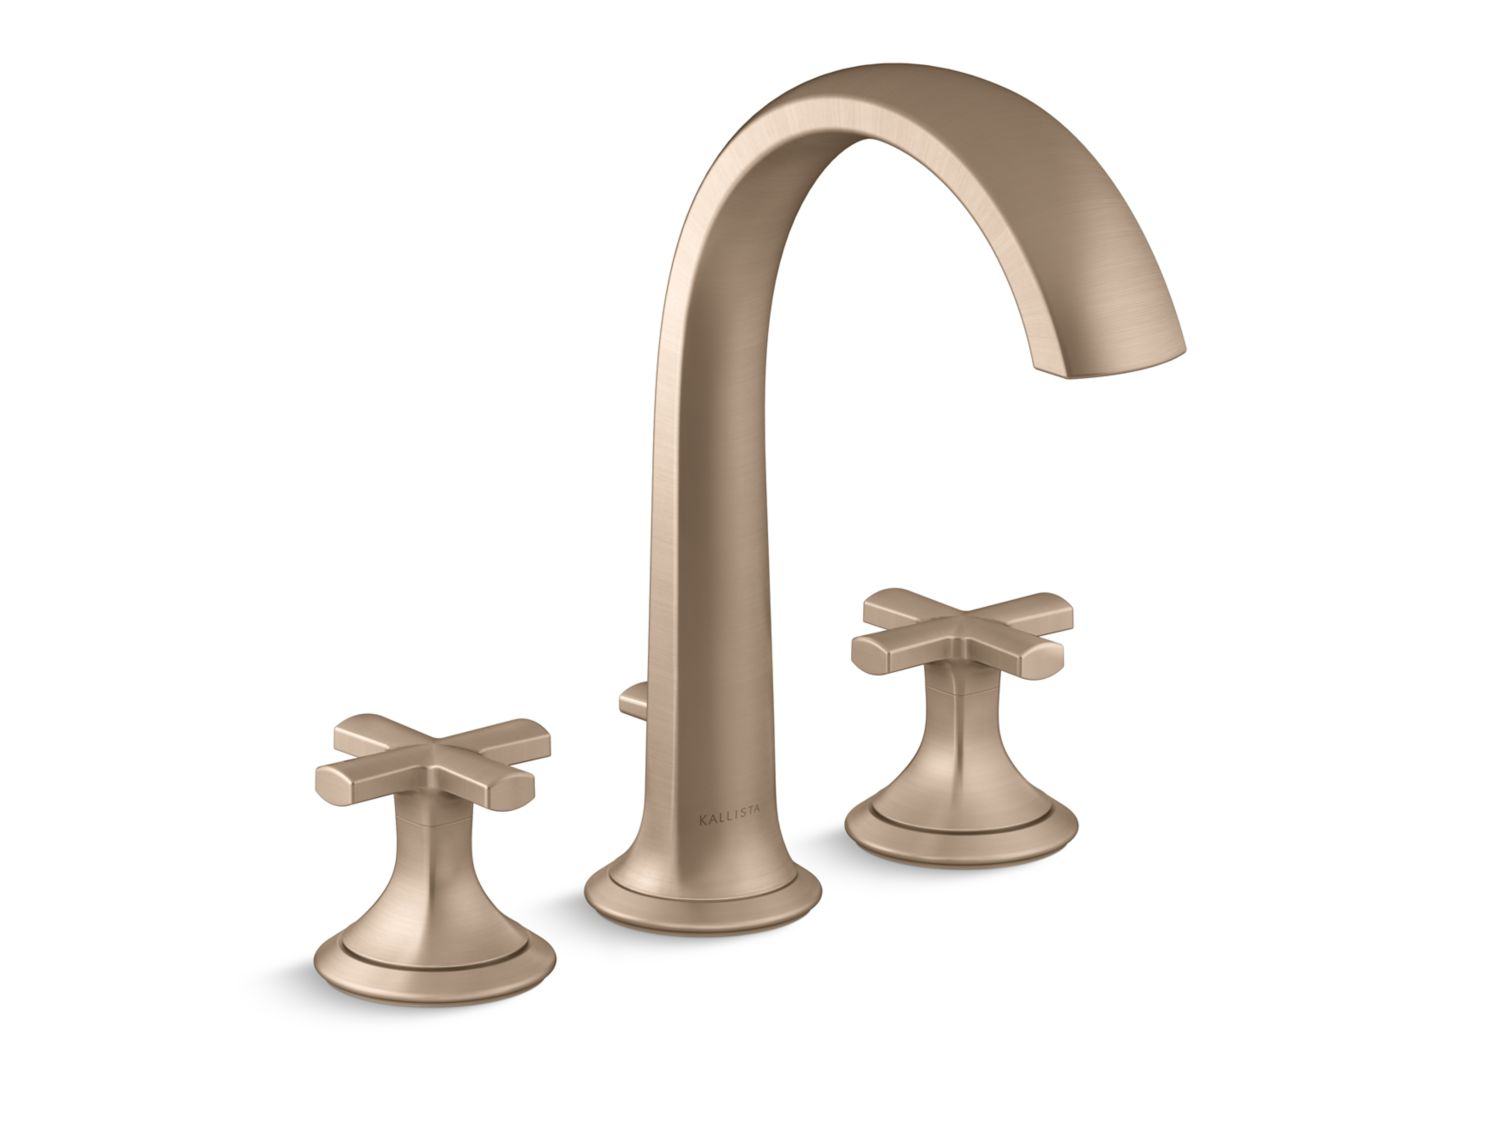 depot lovely silver p by in faucets ideas faucet il lvad home at bathroom luxury of nickel new chicago remodeling kallista